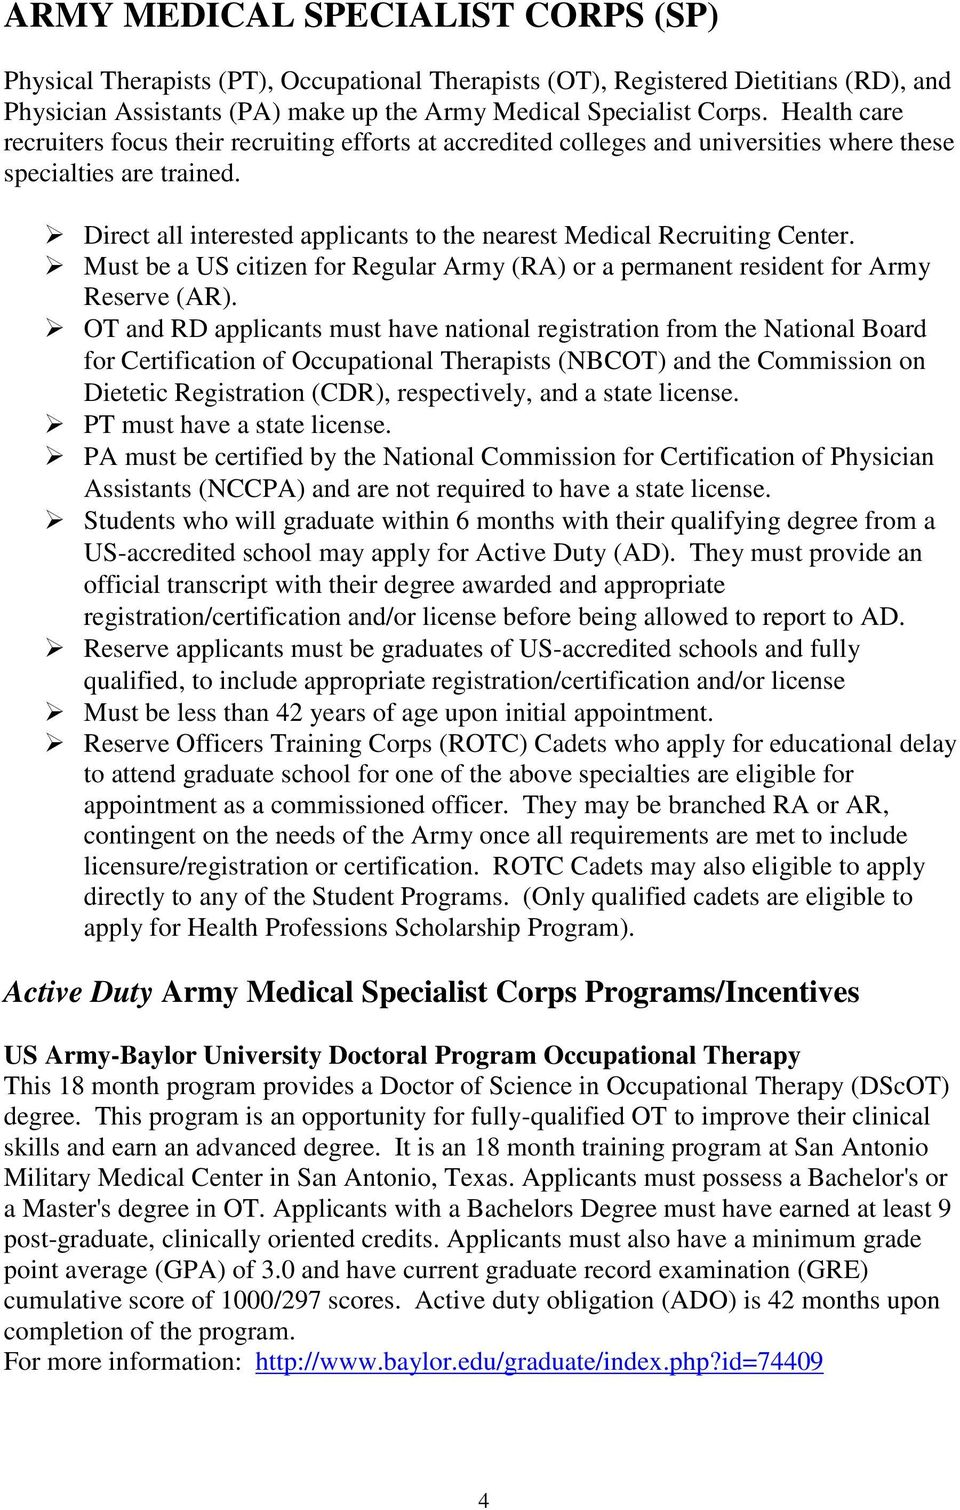 Direct all interested applicants to the nearest Medical Recruiting Center. Must be a US citizen for Regular Army (RA) or a permanent resident for Army Reserve (AR).